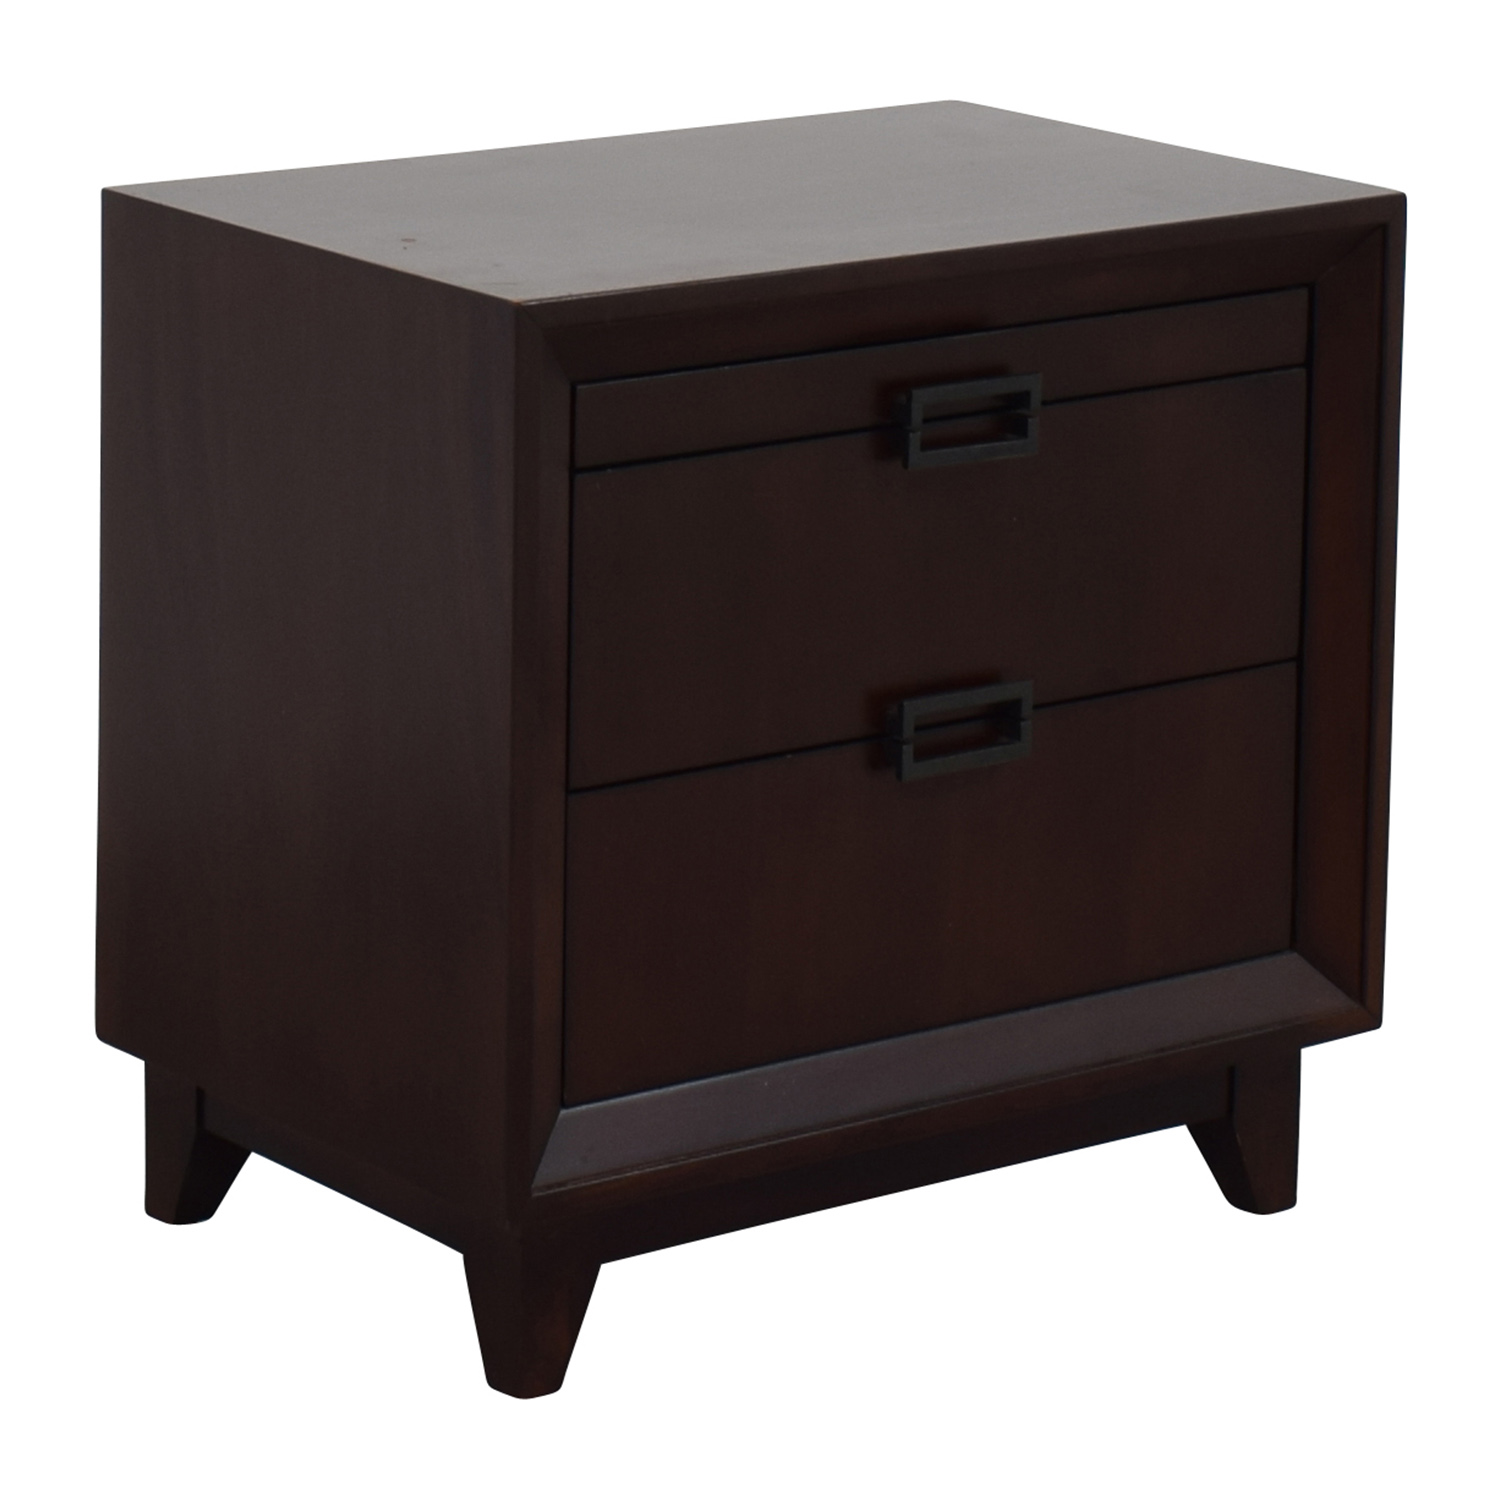 Raymour and Flanigan Raymour and Flanigan Dark Wood Nightstand Tables